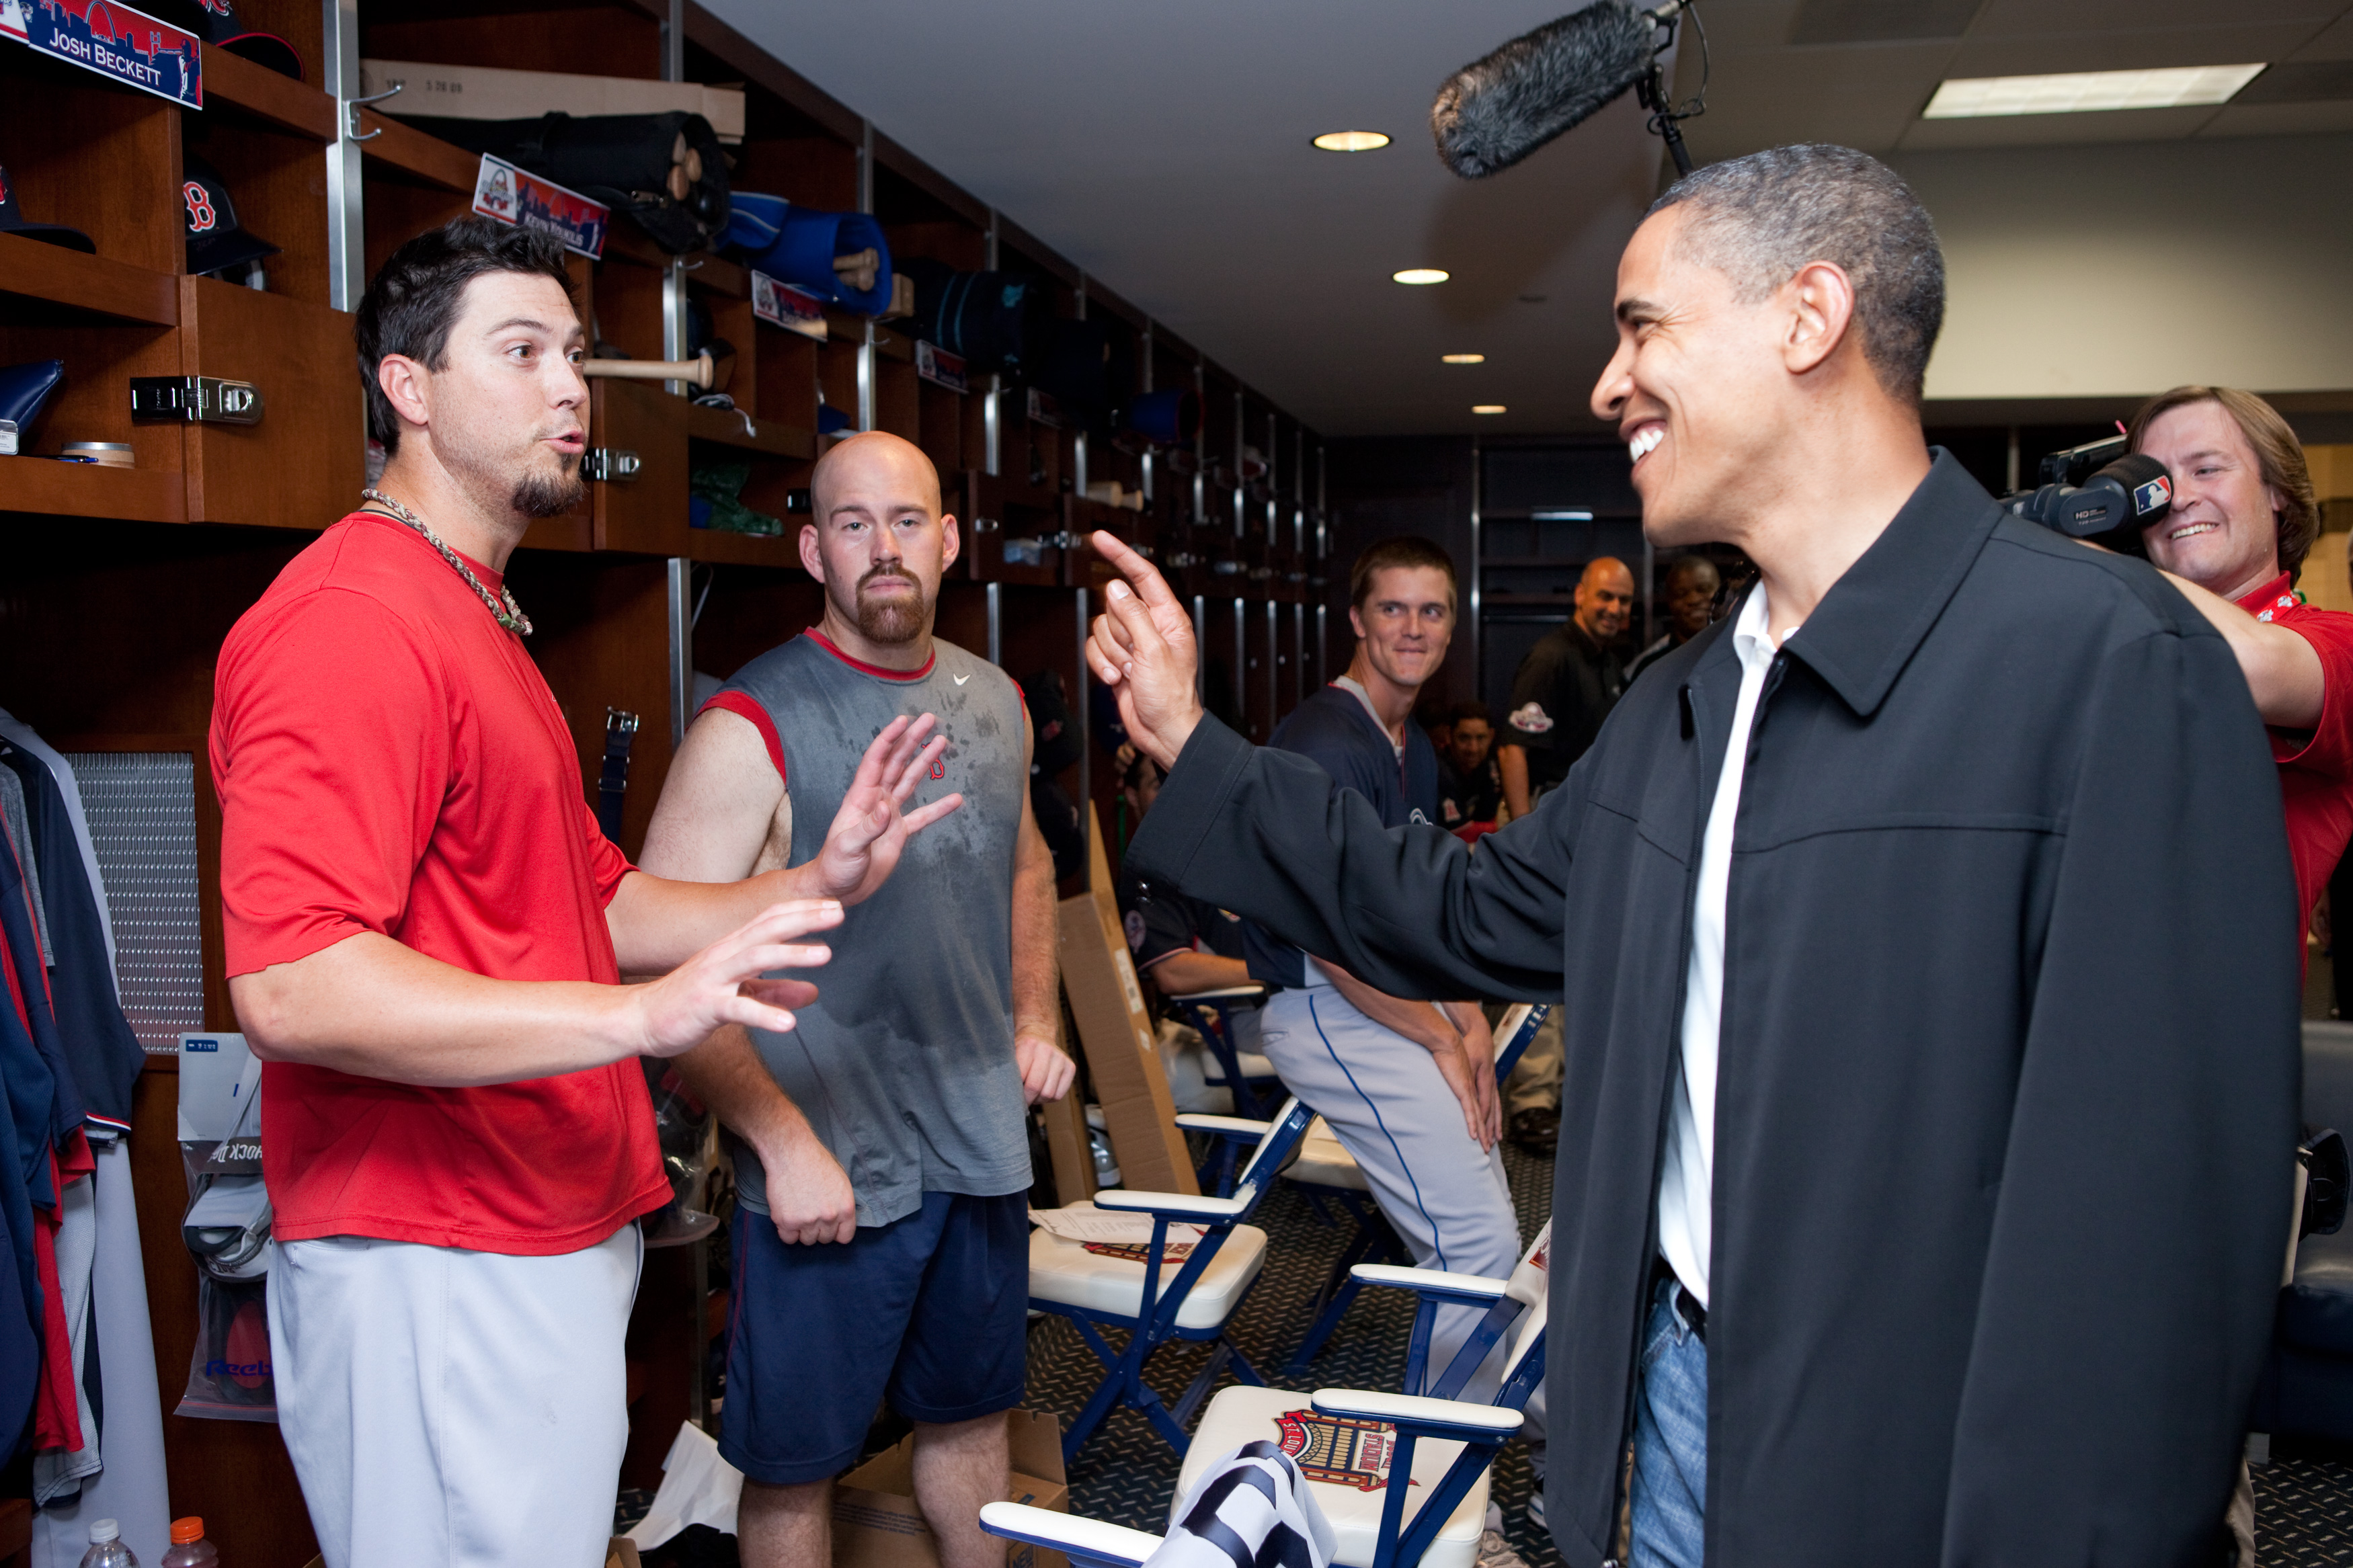 File:Josh Beckett Kevin Youkilis Barack Obama.jpg - Wikimedia Commons